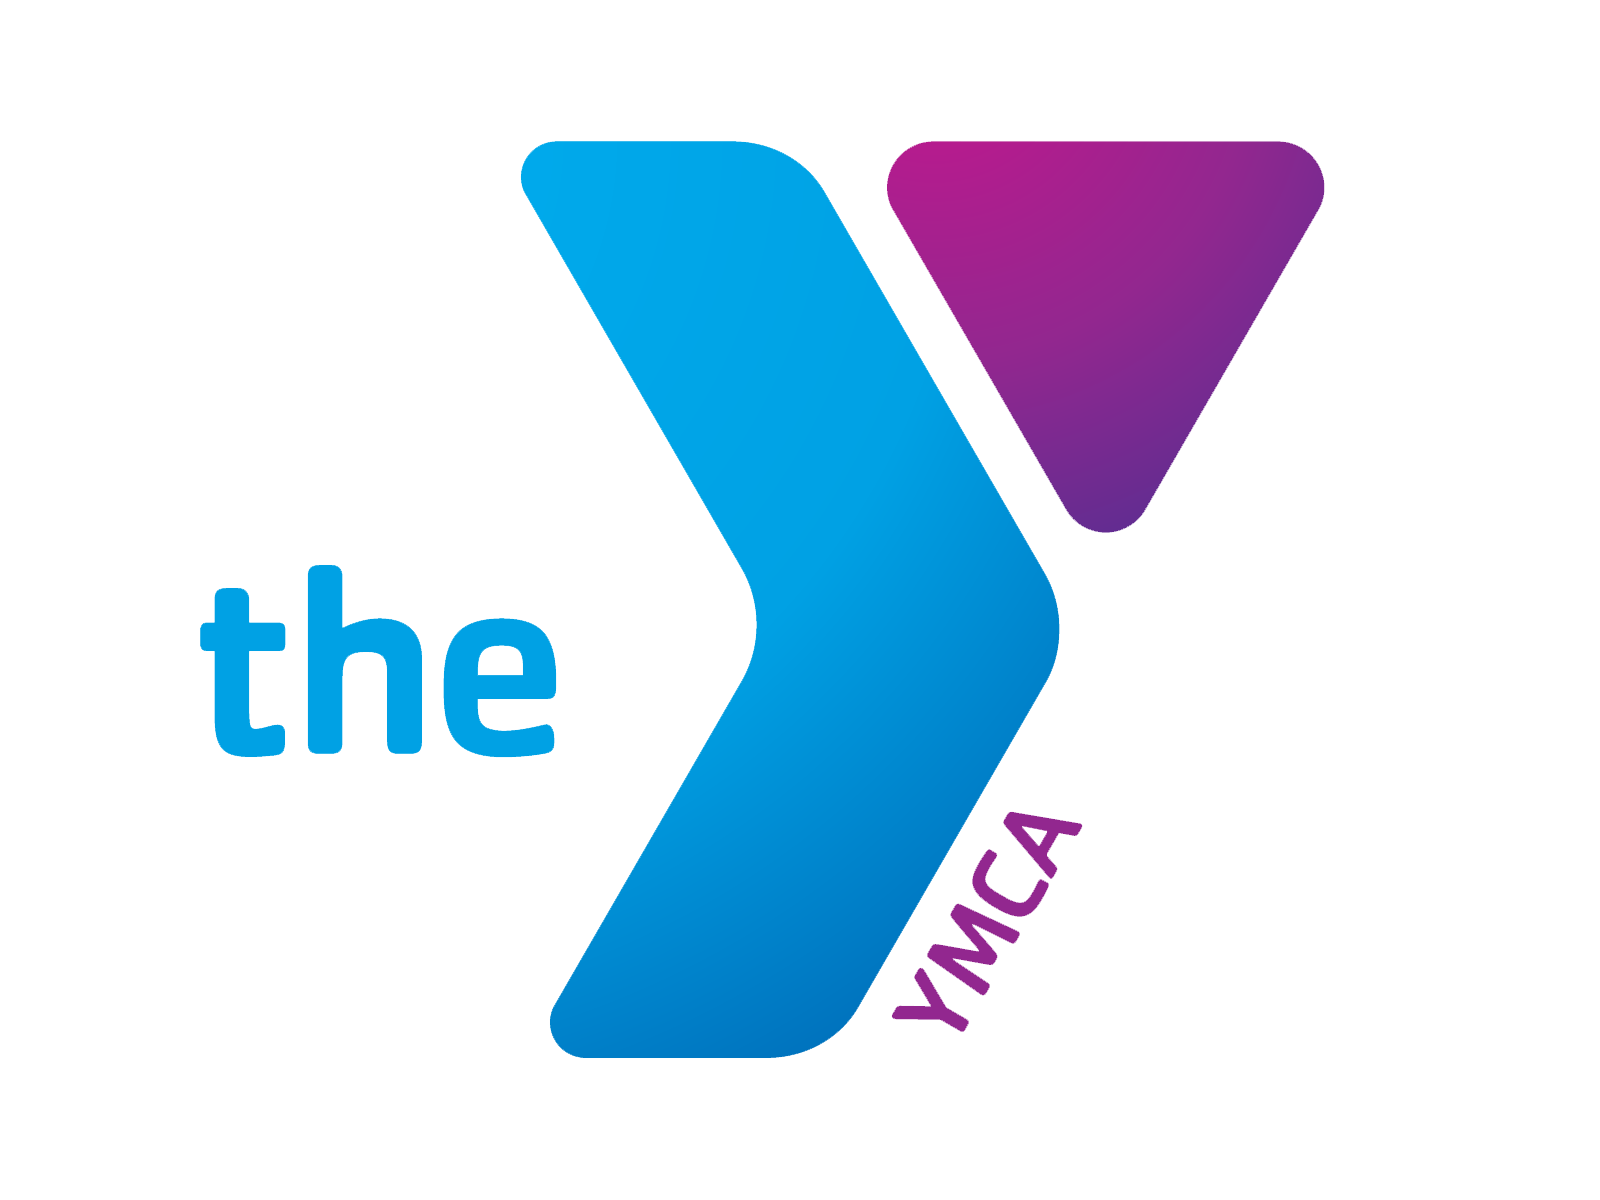 Peninsula Family YMCA